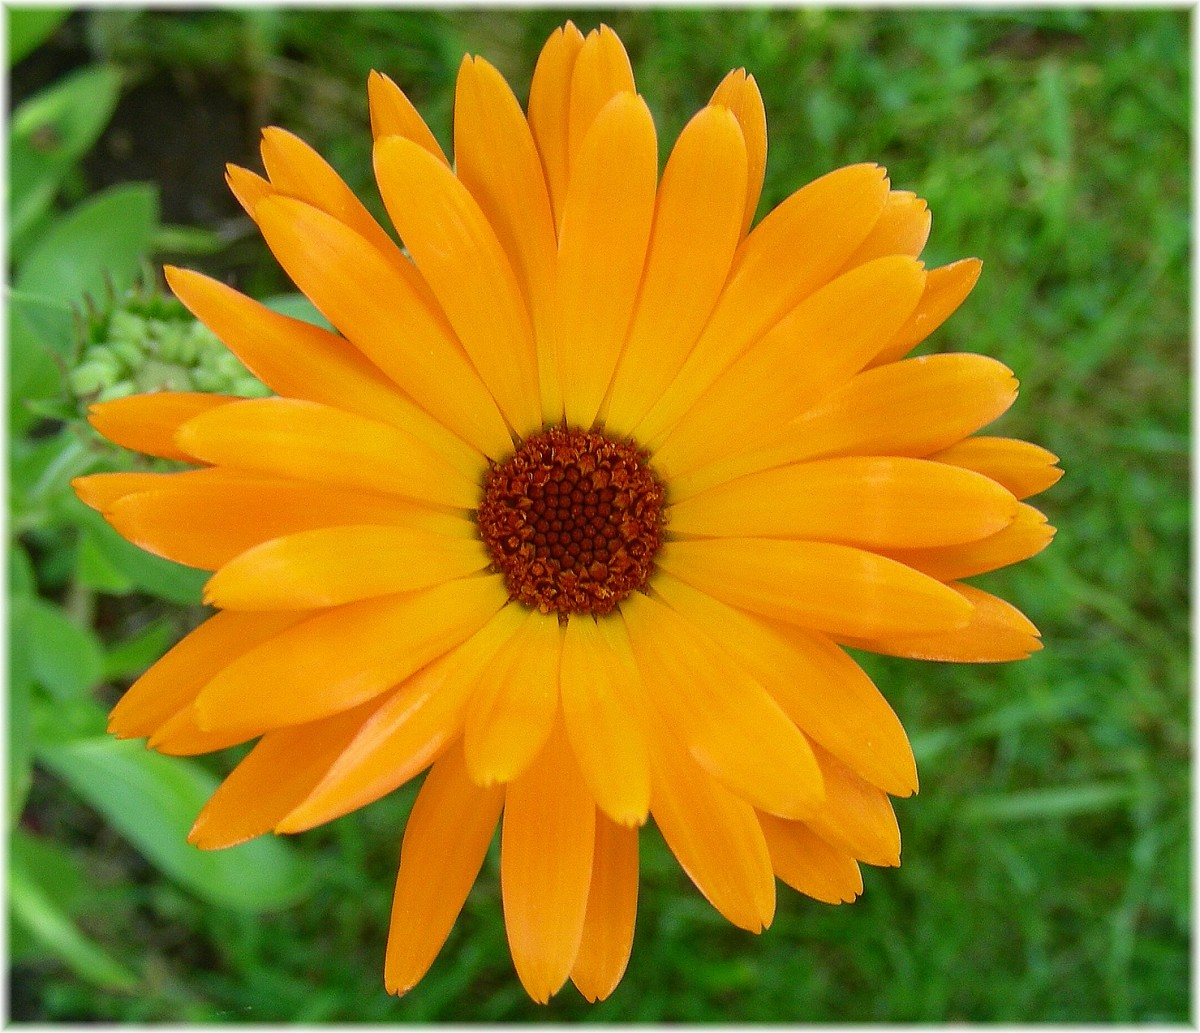 Lotions and creams that contain marigold are effective in treating psoriasis.